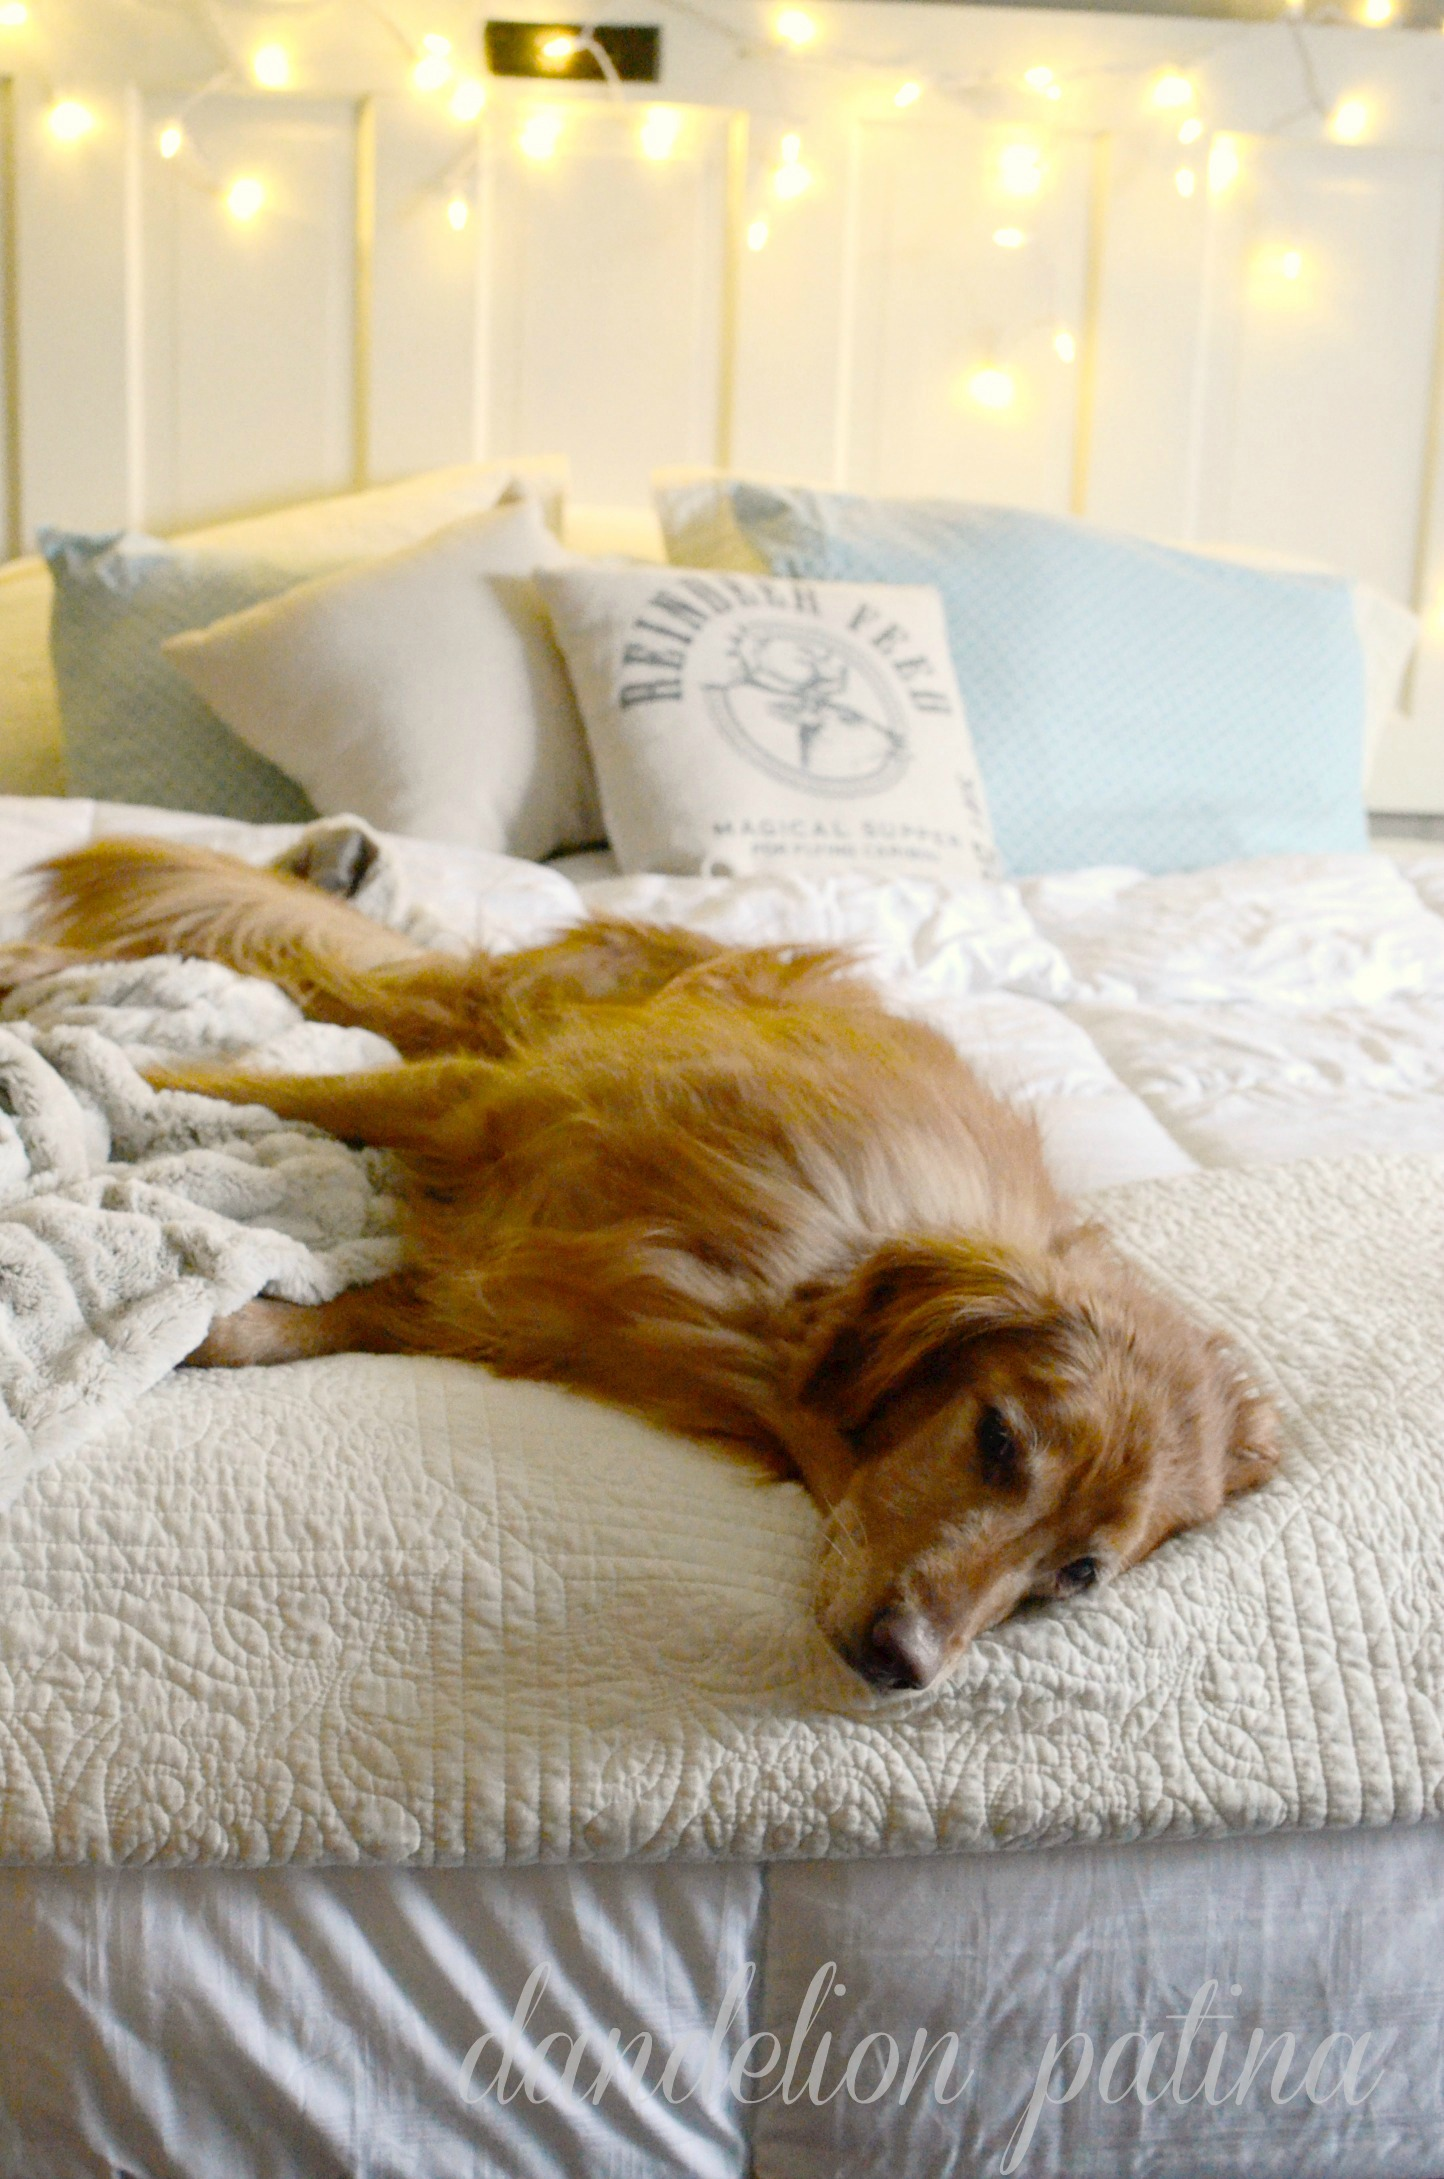 golden retriever comfy in bed